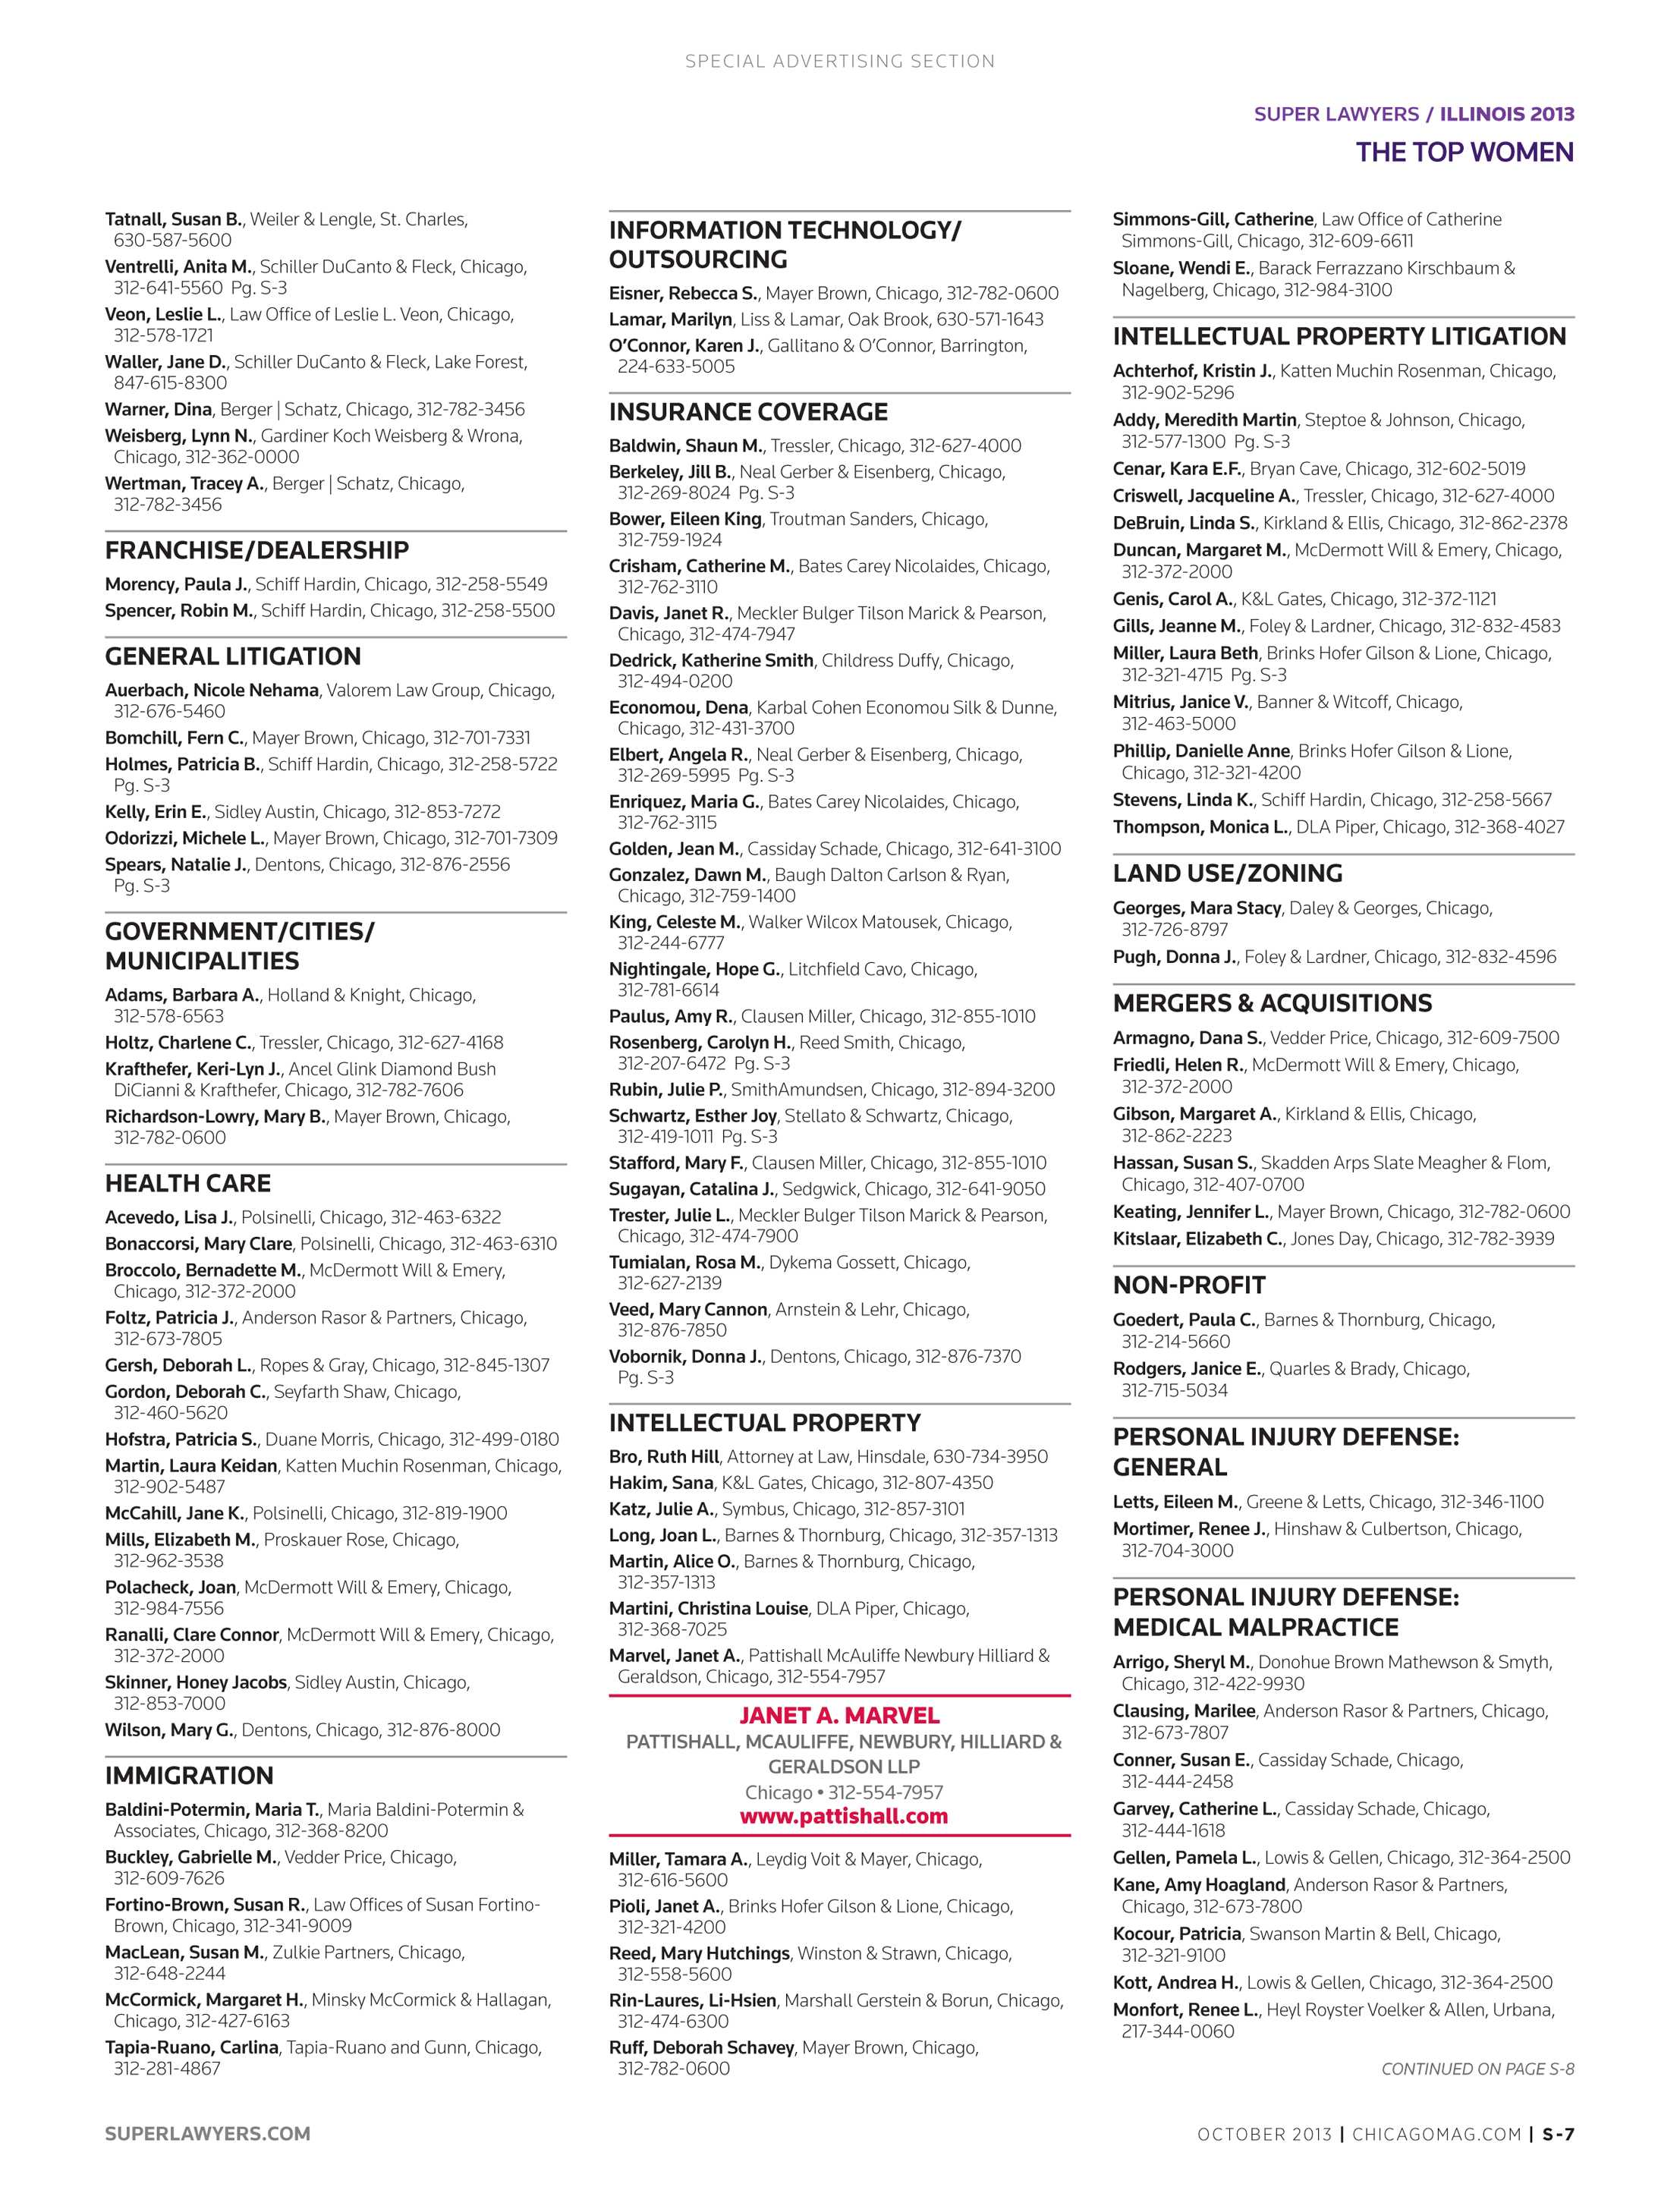 super lawyers the top women attorneys in illinois 2013 page s 7